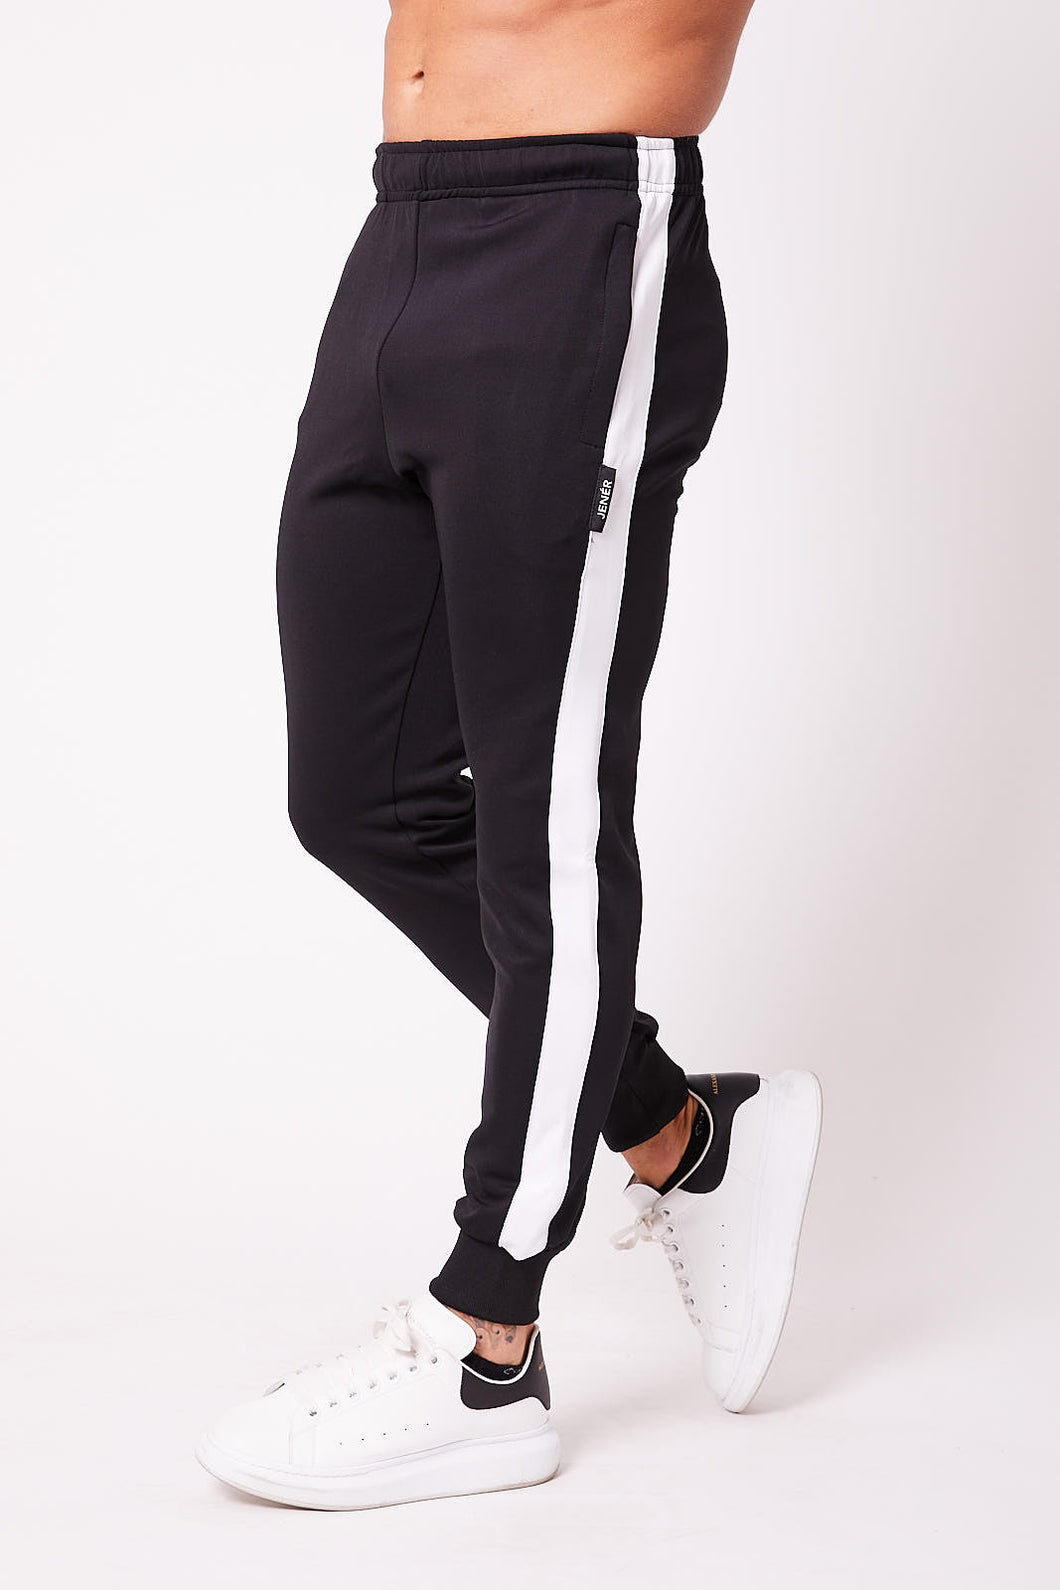 JENÉR Slim Fit Track Pants